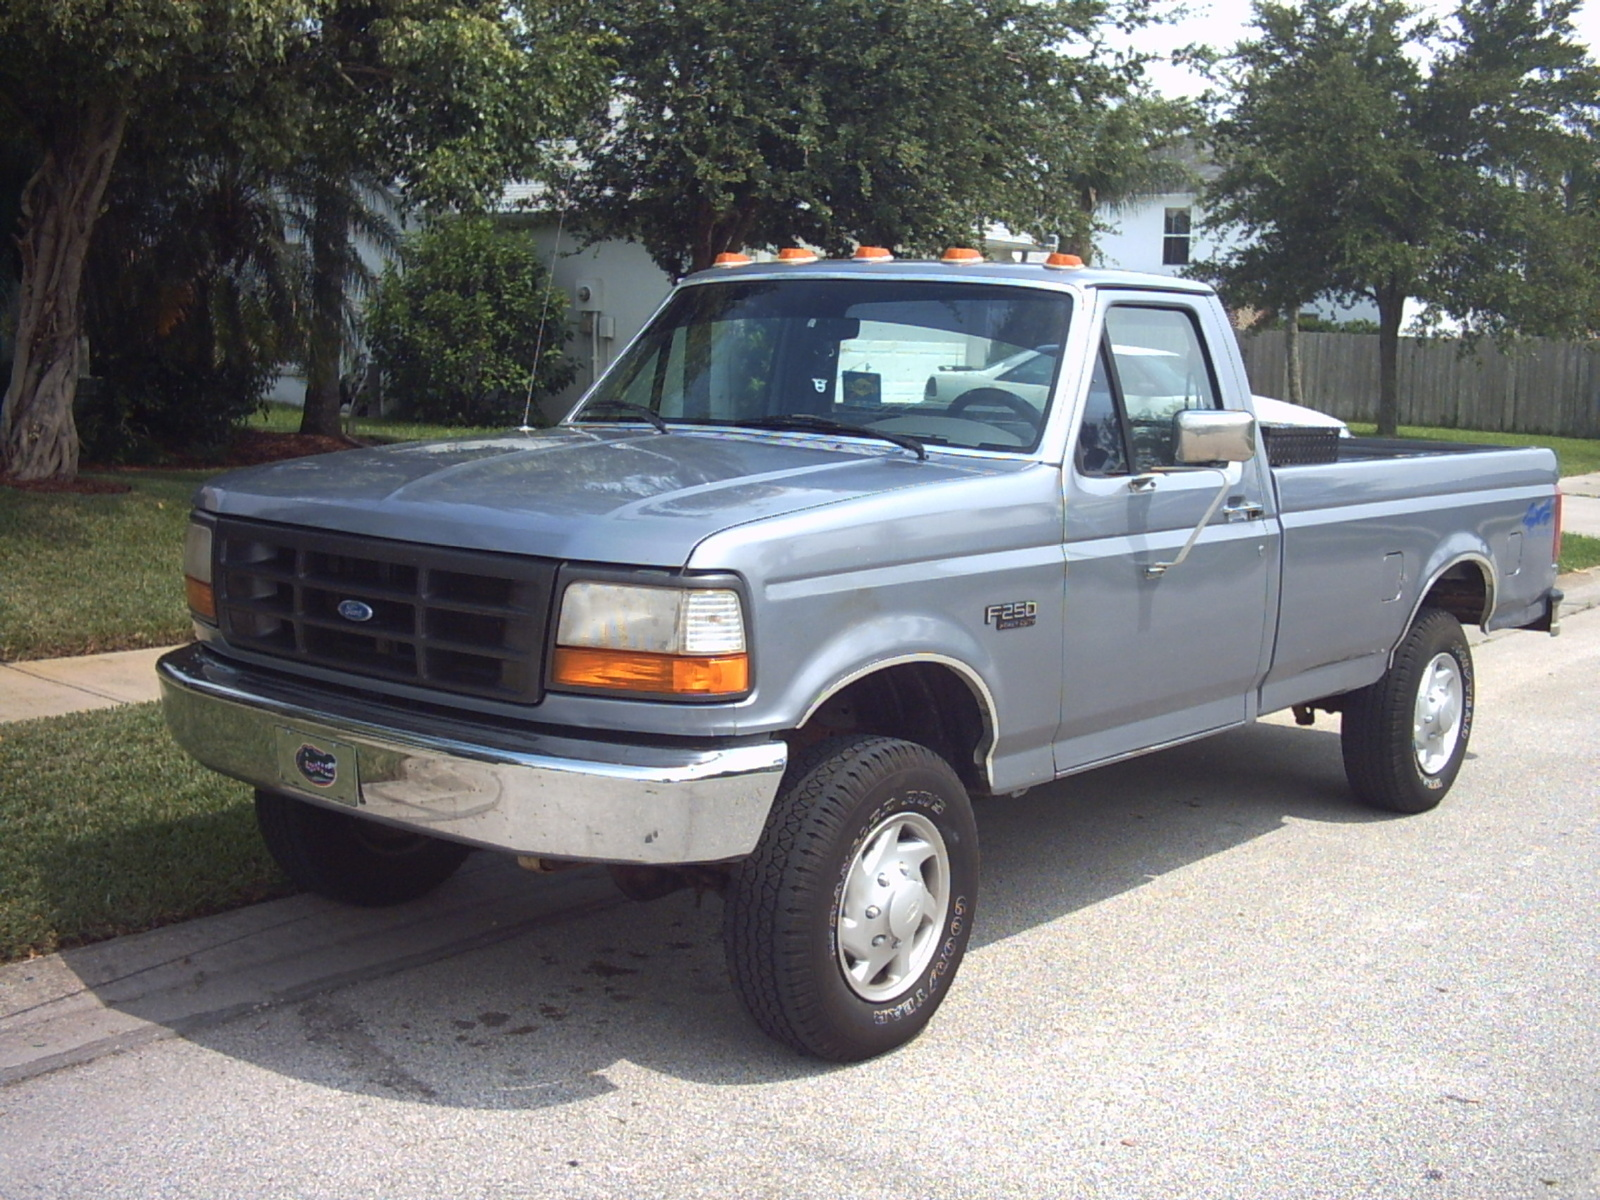 Cars compared to 1997 Ford F-350